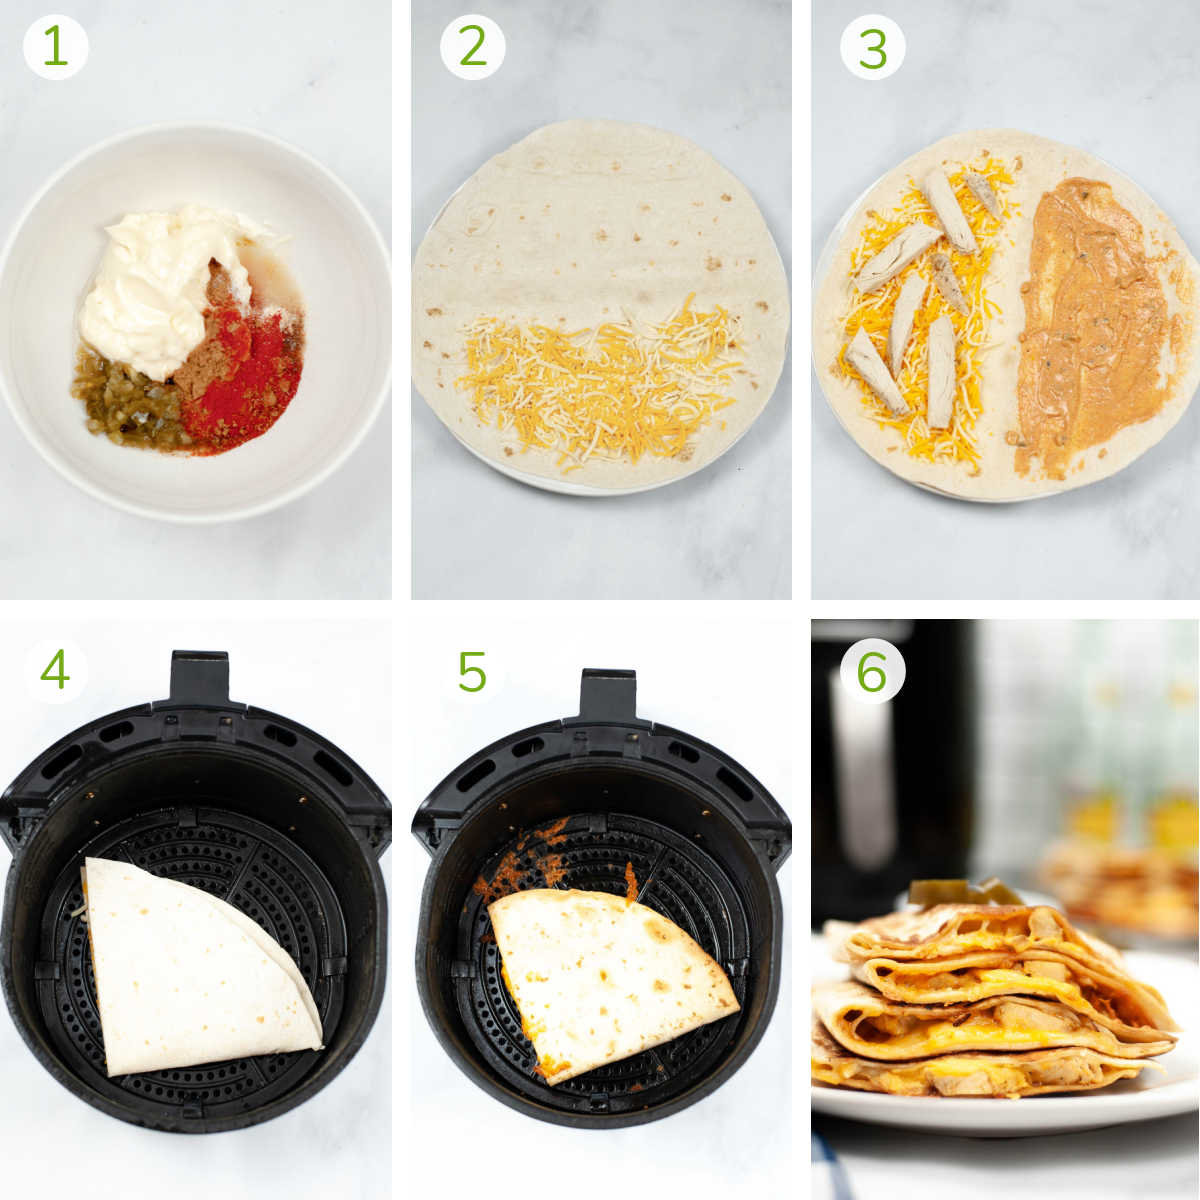 photos showing mixing the seasoning, adding cheese to the tortilla with the chicken, and then folding and air frying it.